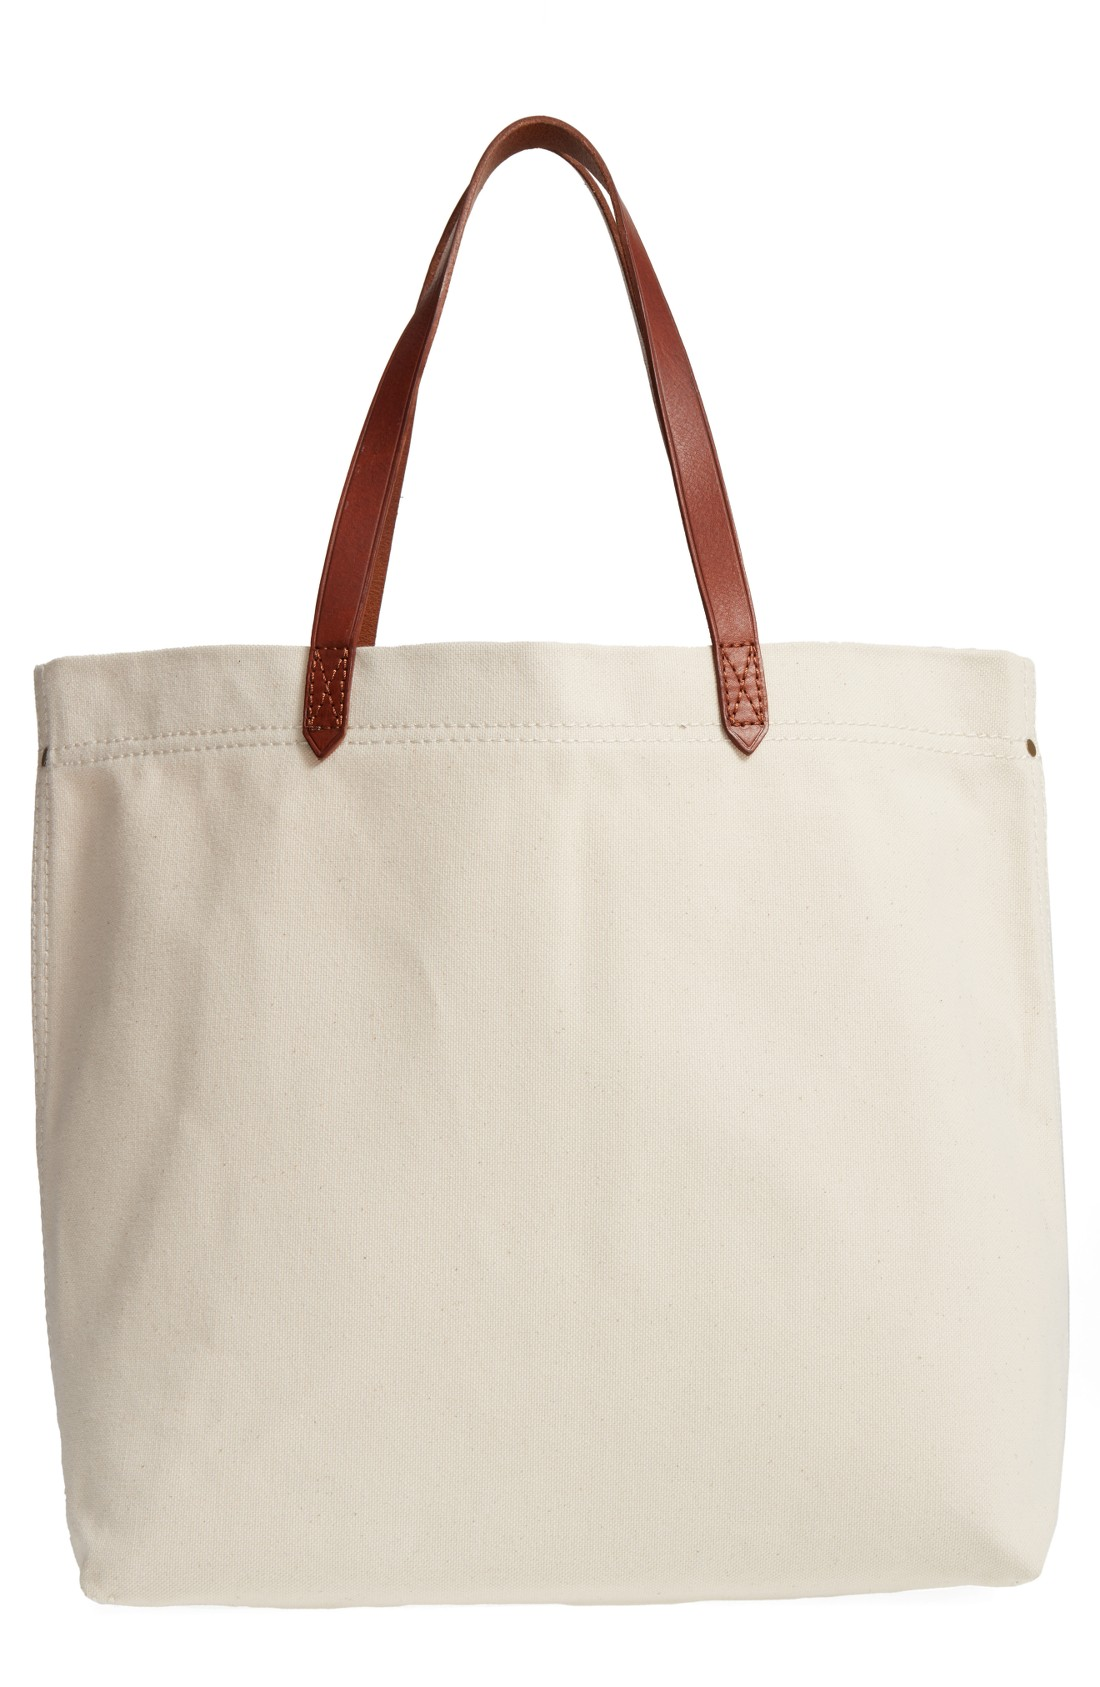 Plain Canvas tote bags 2017